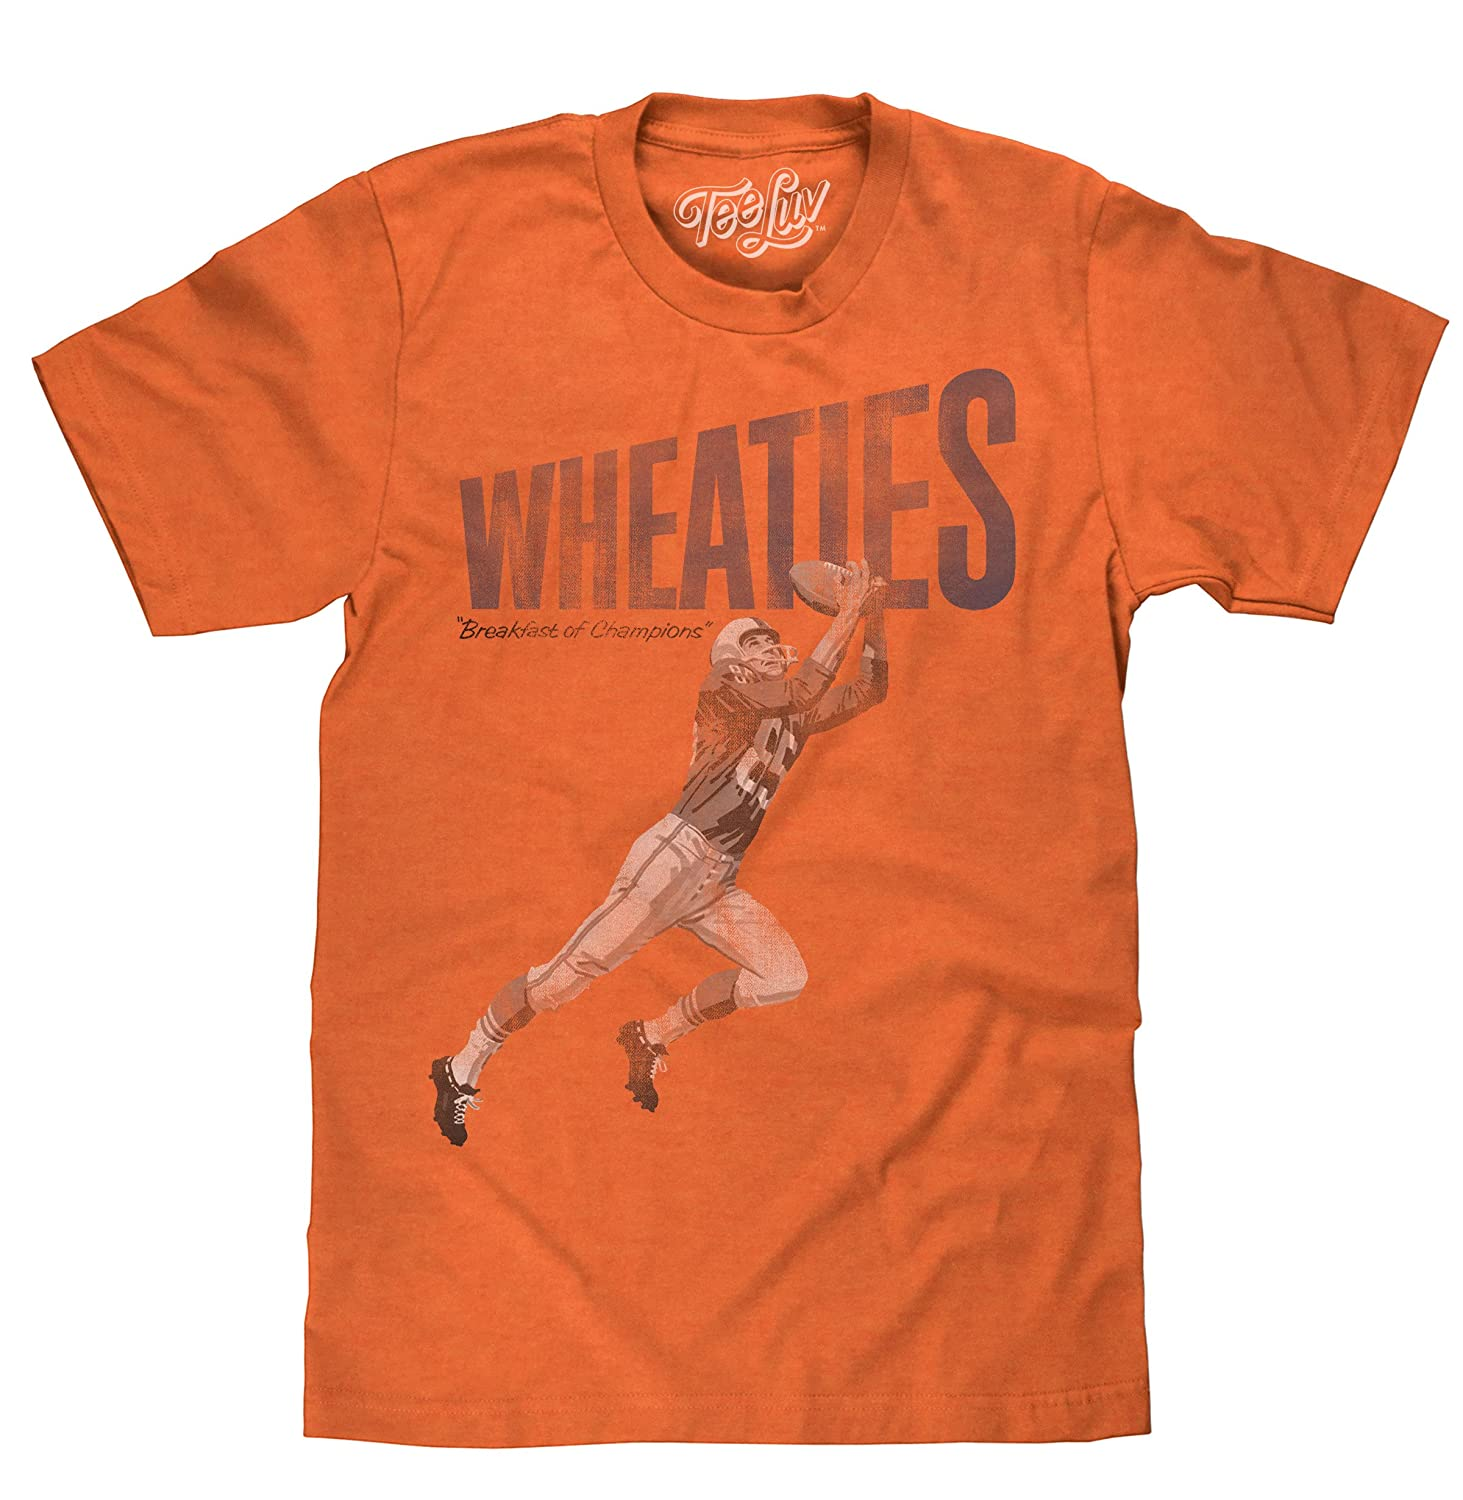 58aa66220 YOUR NEW FAVORITE WHEATIES T-SHIRT: Enjoy the nostalgia of the classic  Wheaties football player logo and